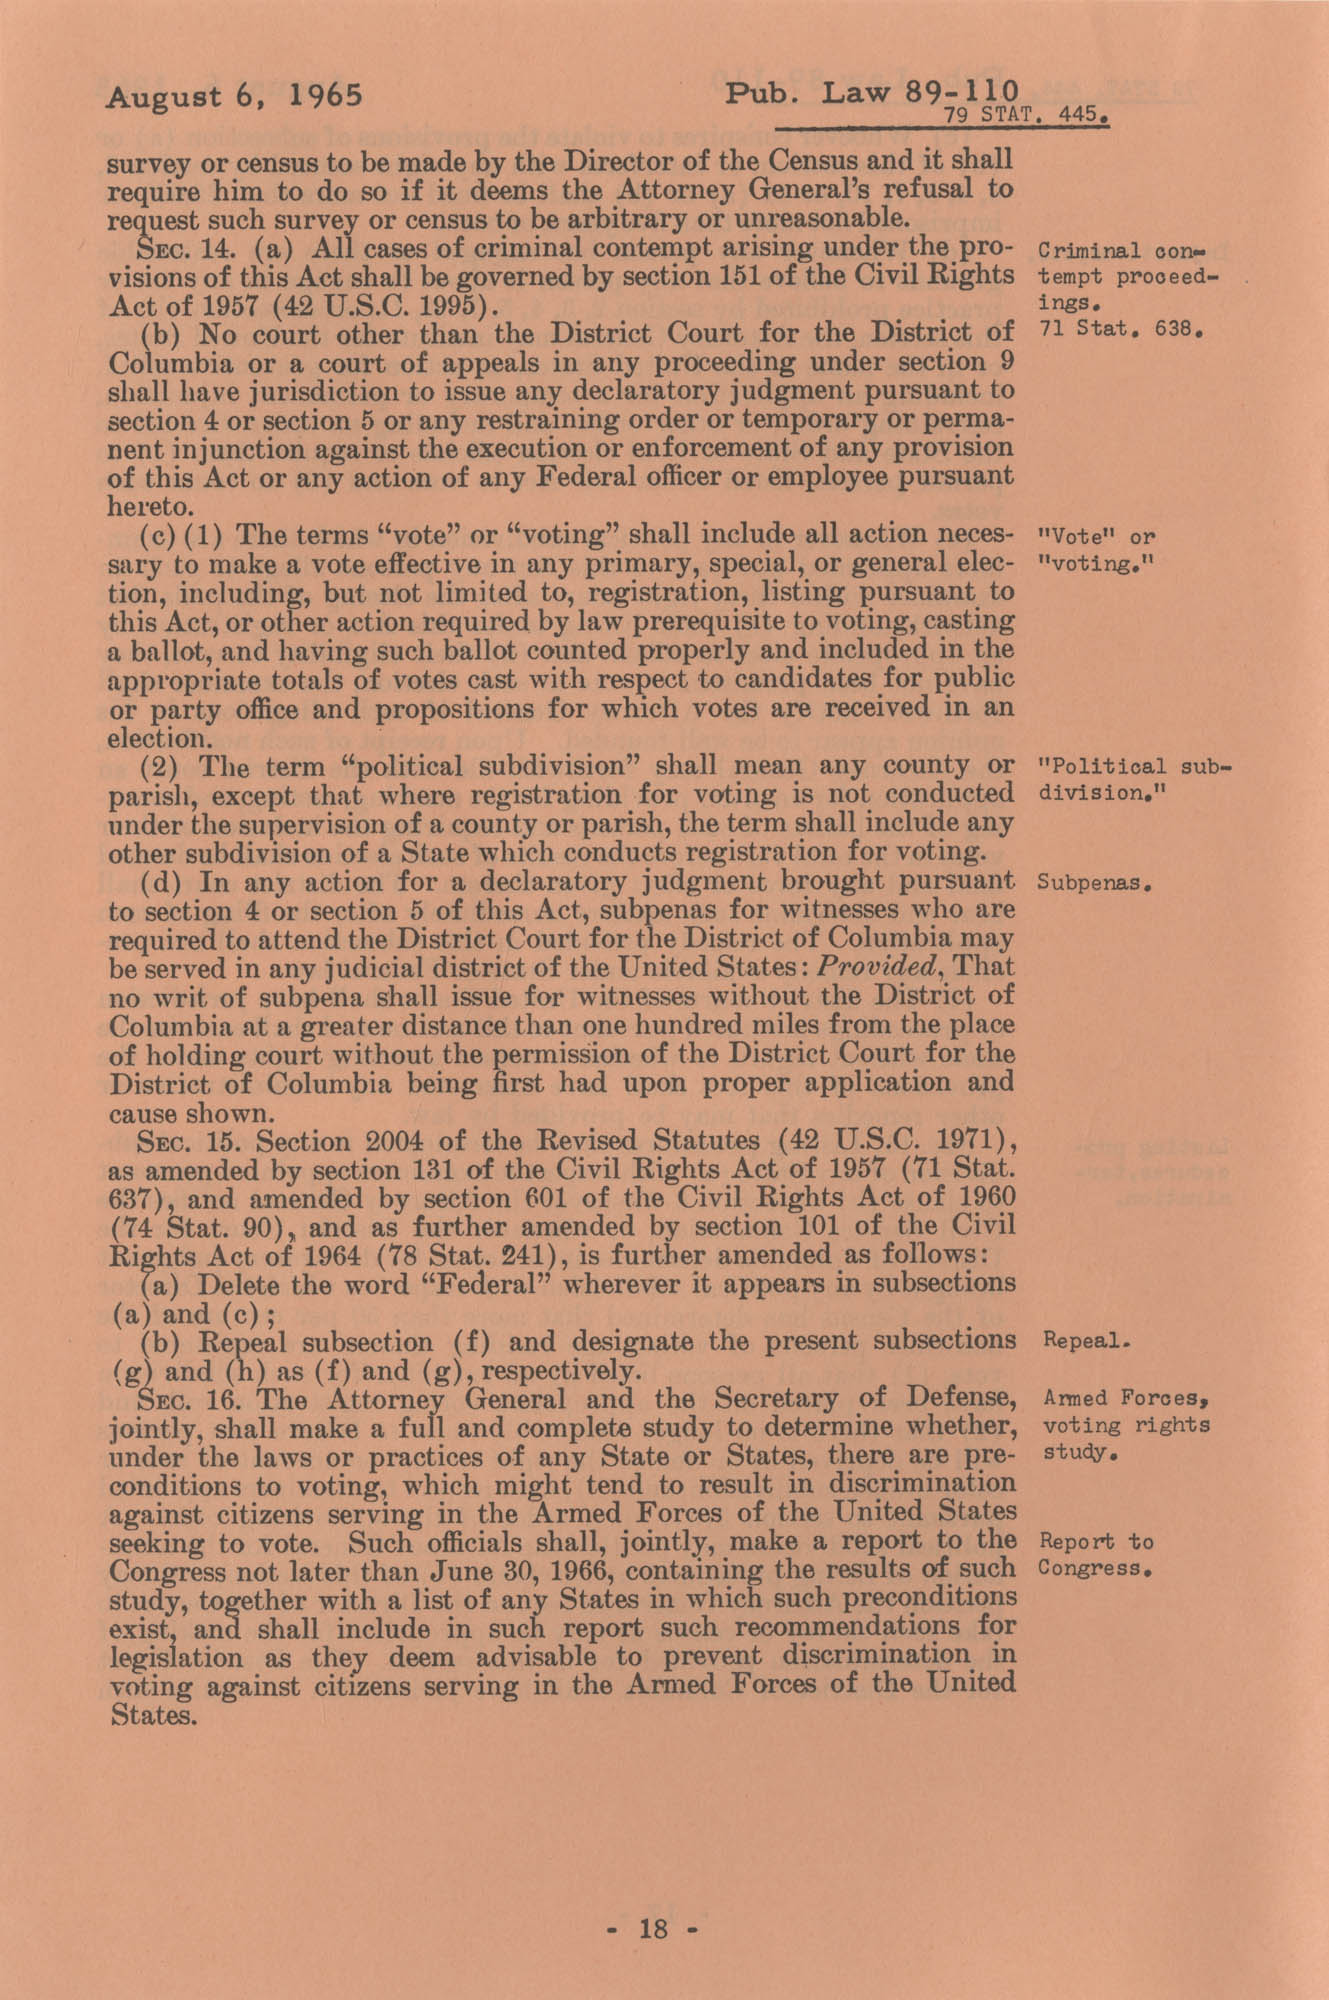 The Voting Rights Act of 1965, Page 18